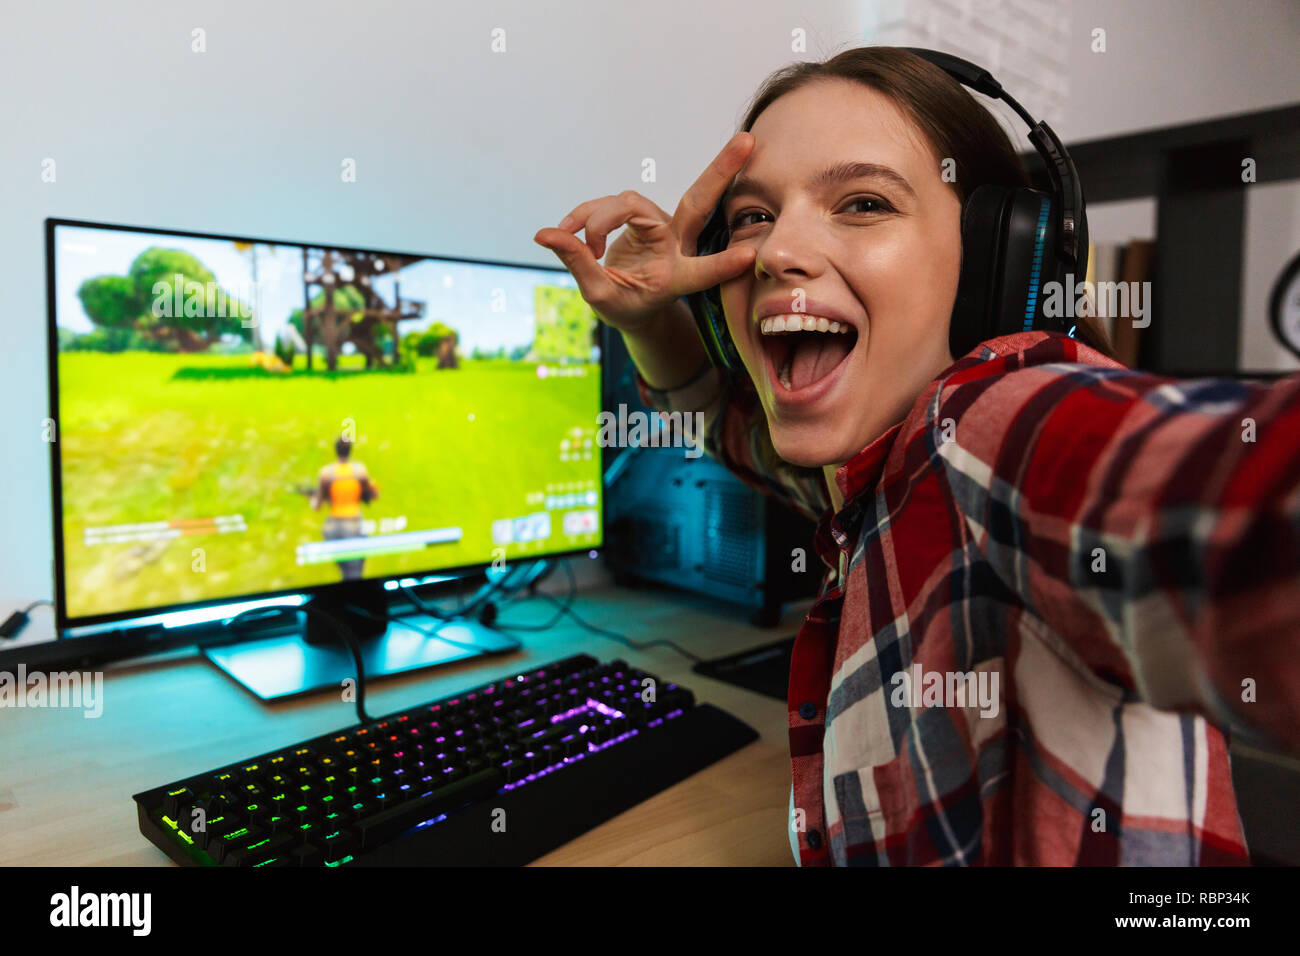 Portrait of an excited young woman wearing headphones sitting at the table, playing computer online games, taking a selfie Stock Photo